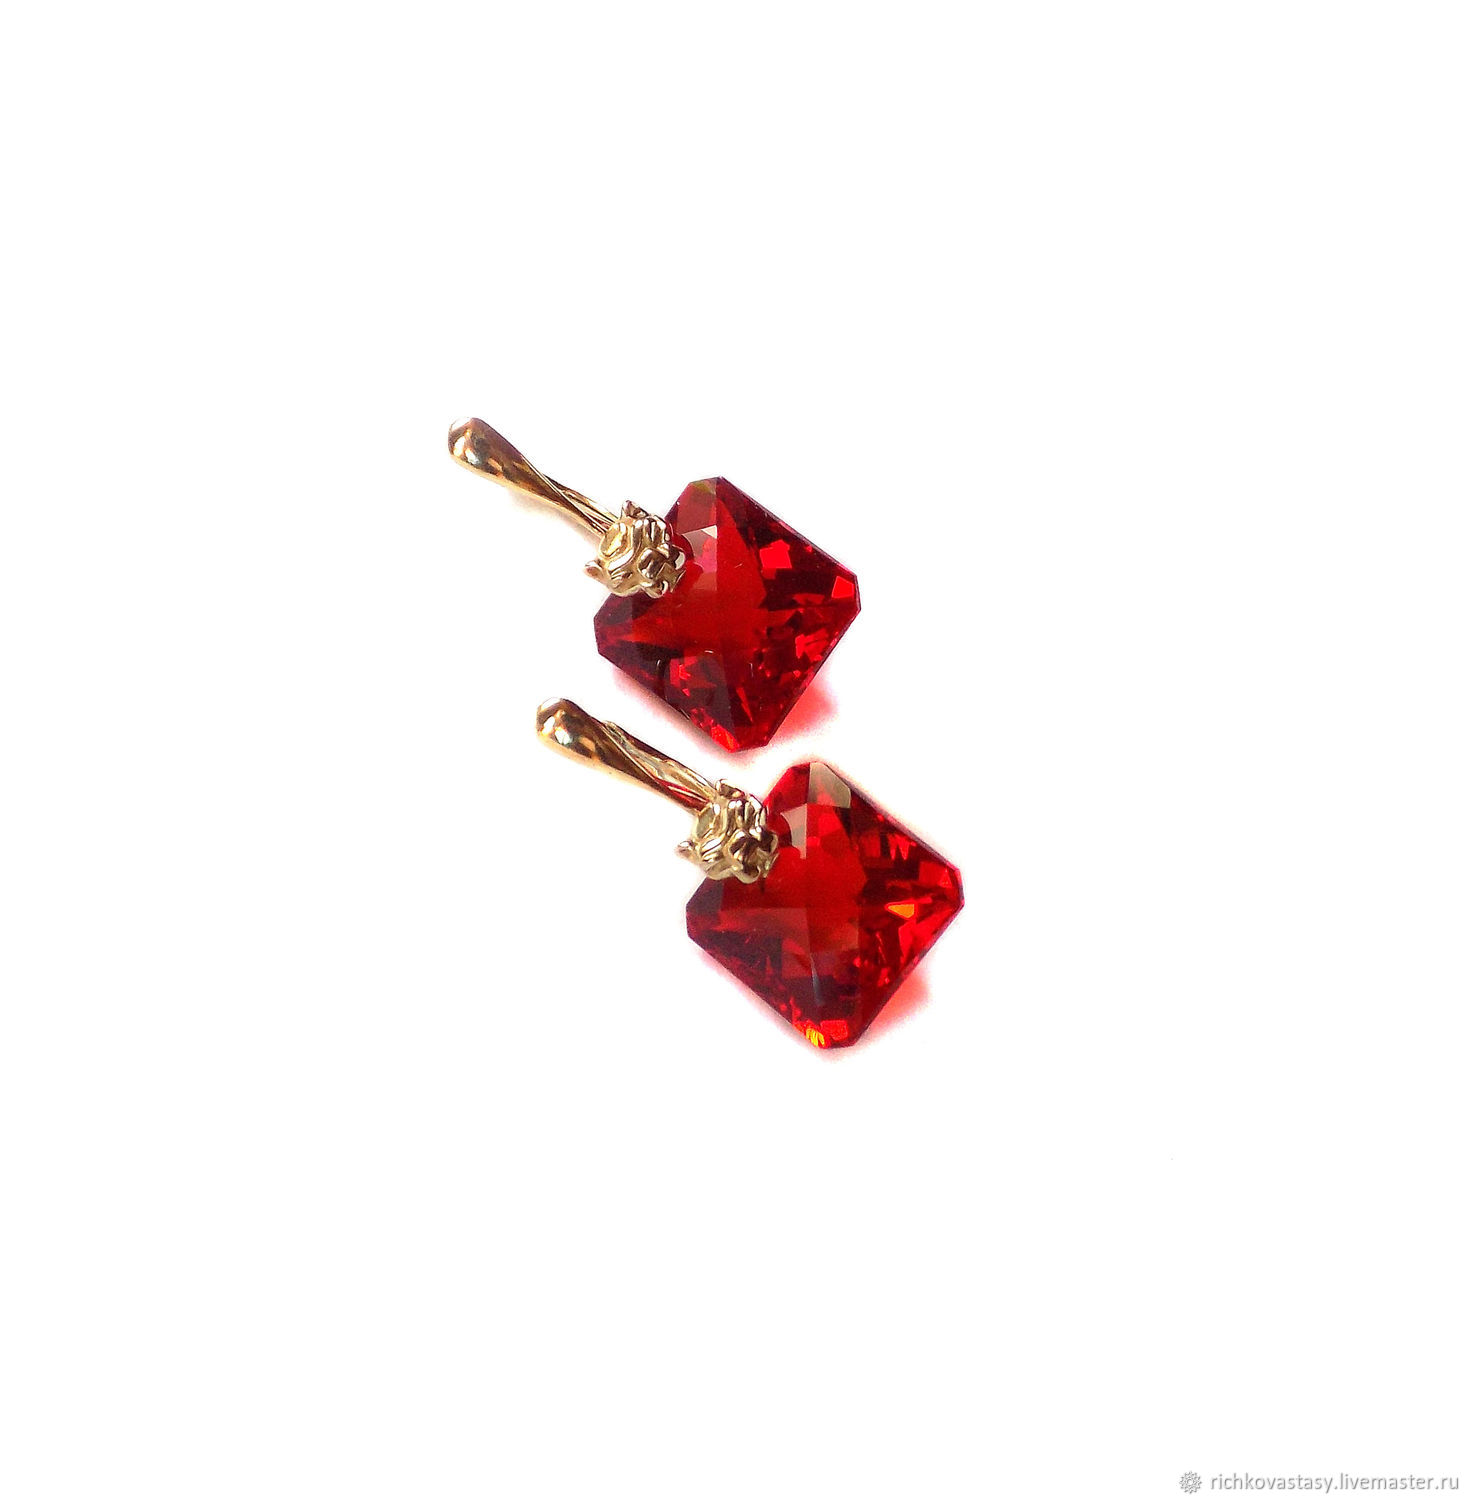 Earrings Handmade Livemaster Leo Red Topaz Carat 25